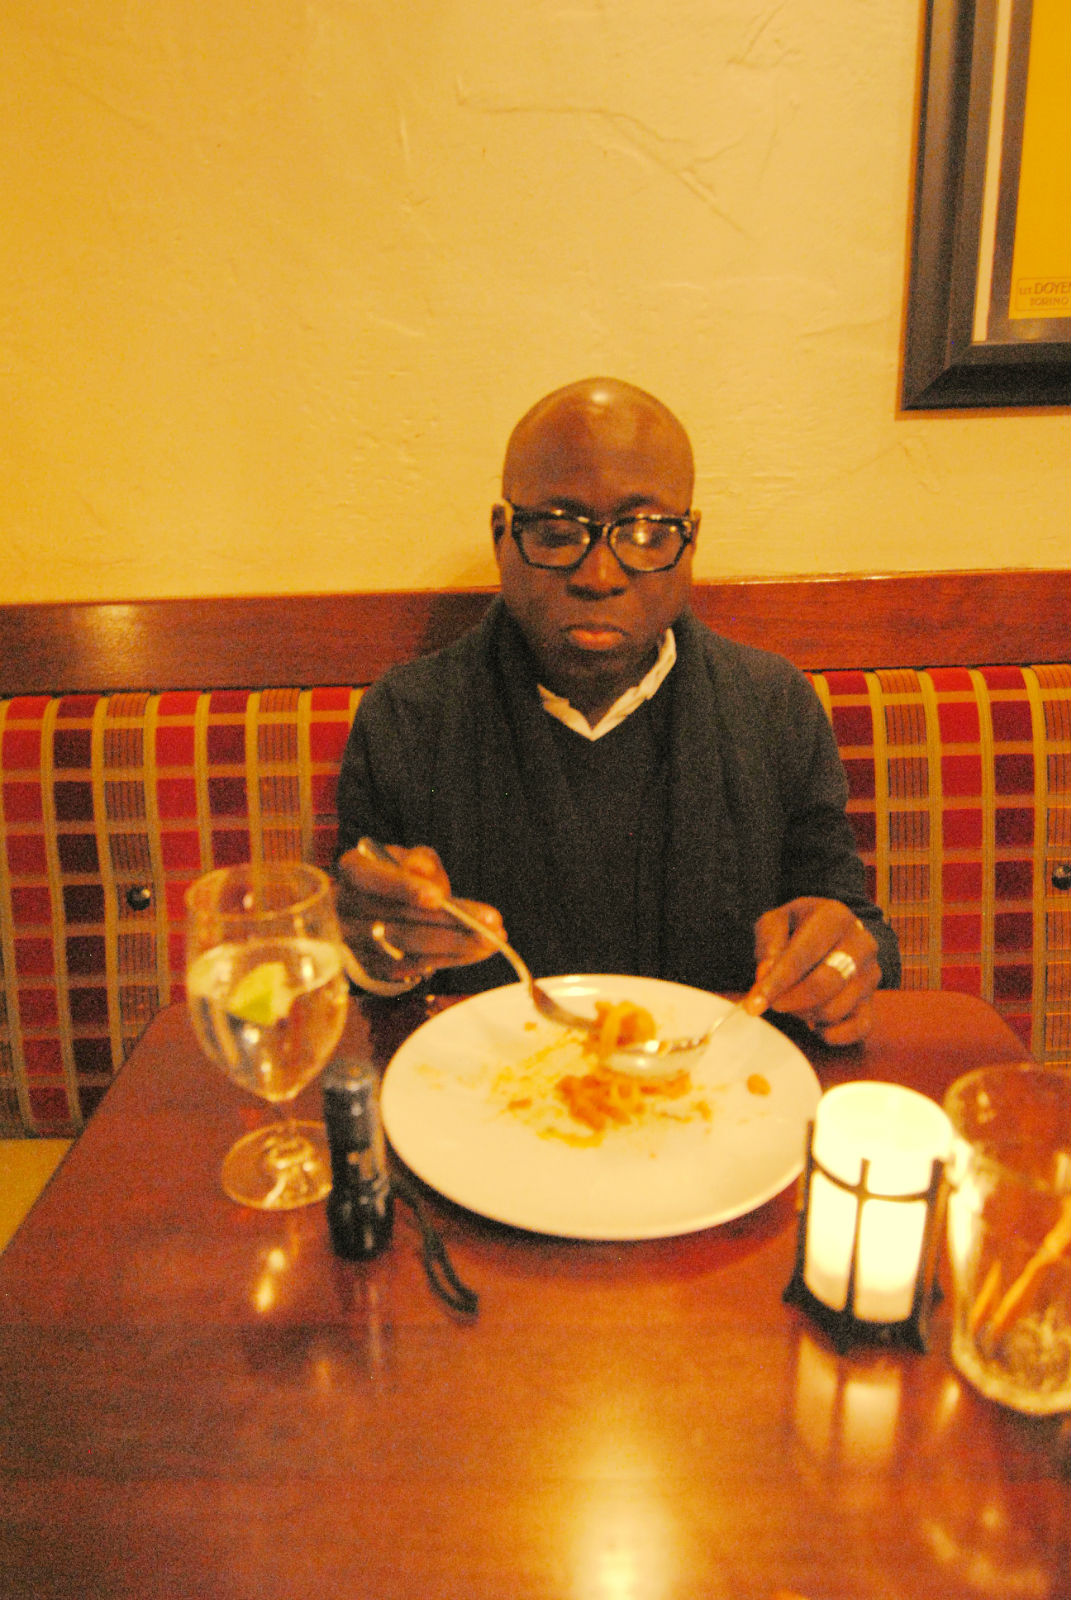 Sampling the fare at Cantinetta Luca